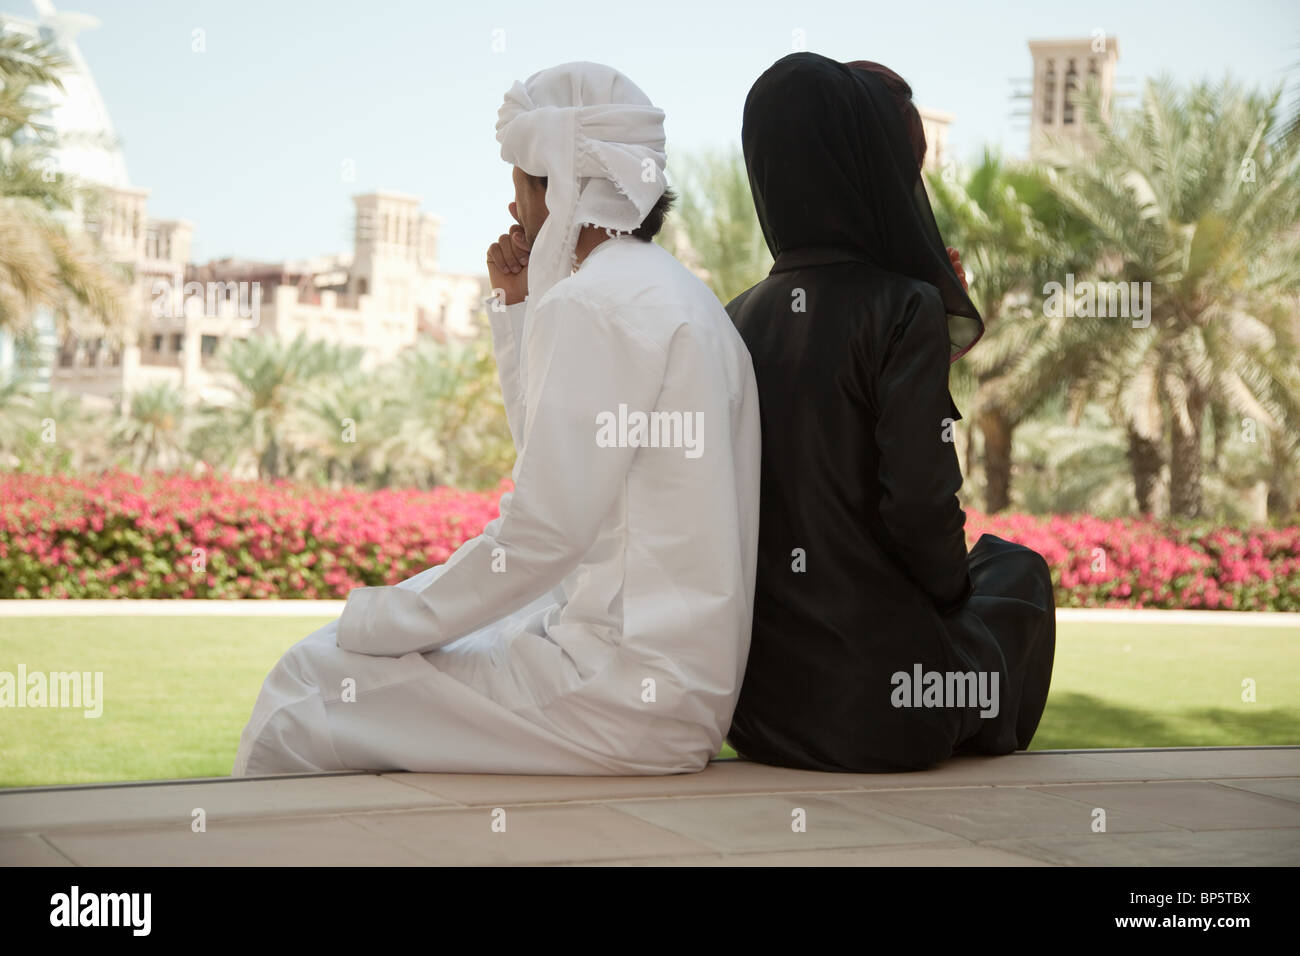 Middle Eastern people sitting side by side - Stock Image